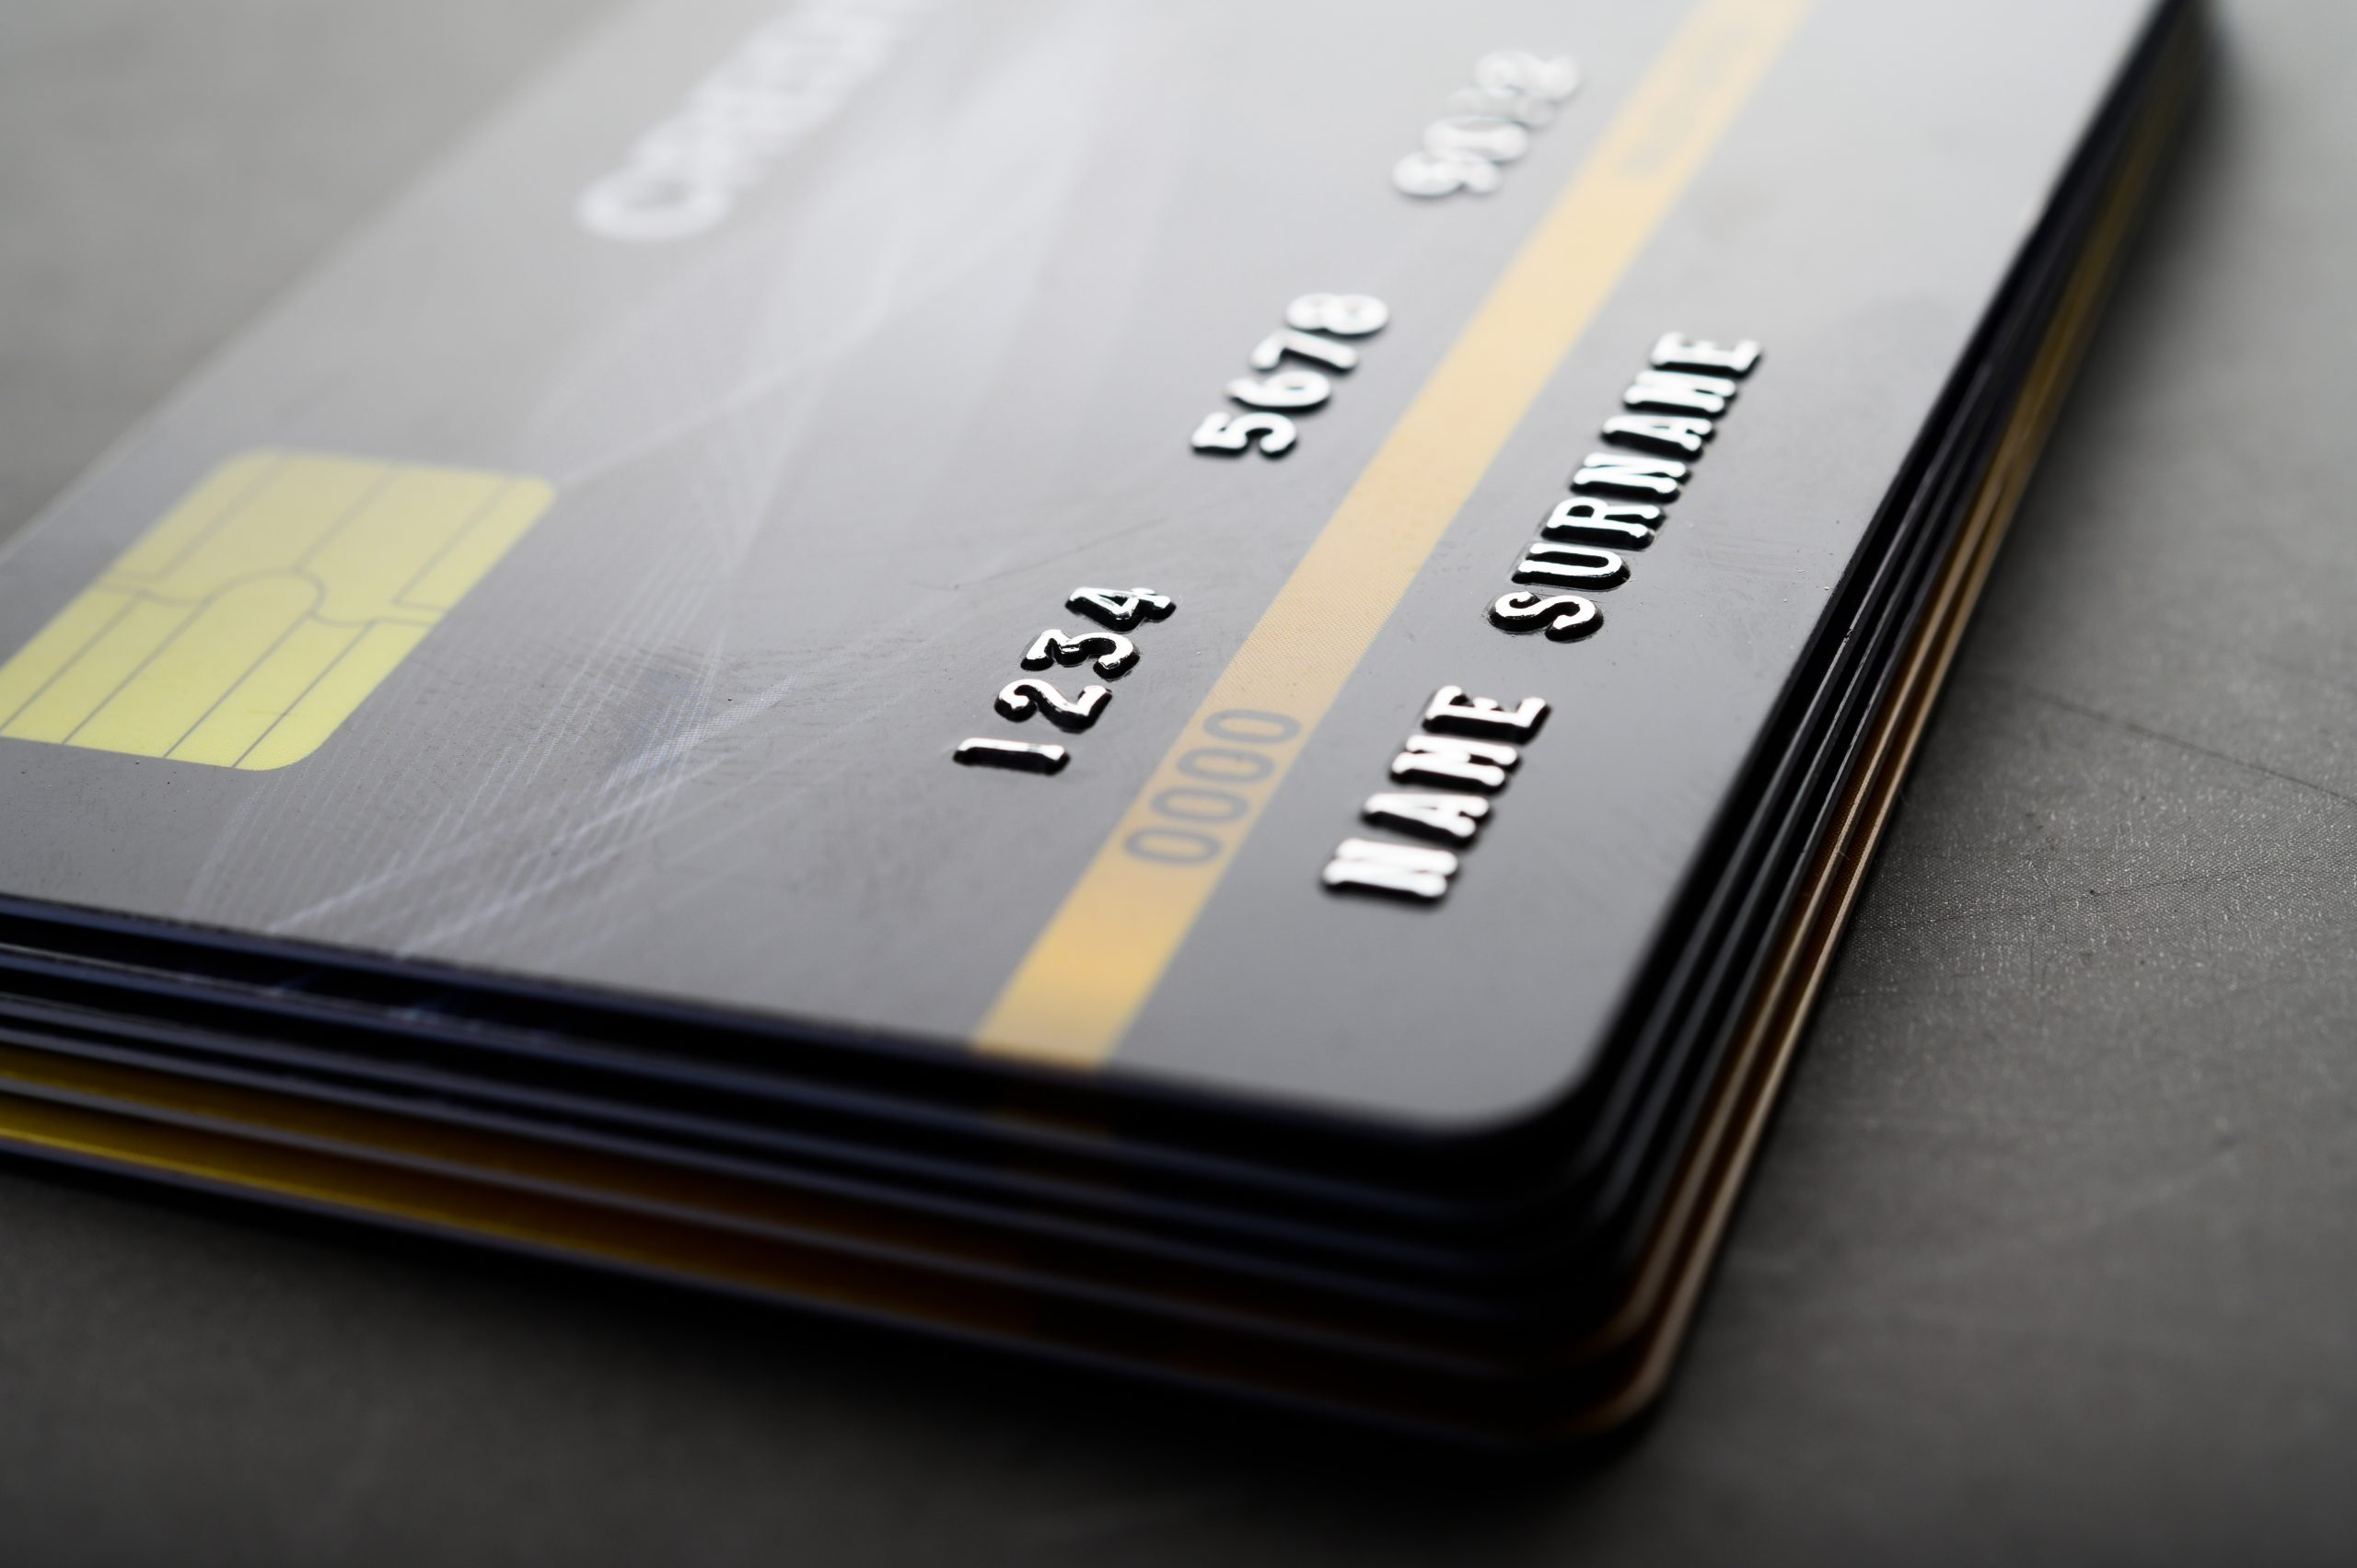 Credit Card Collections: Safe Harbor for Work and You Get to See